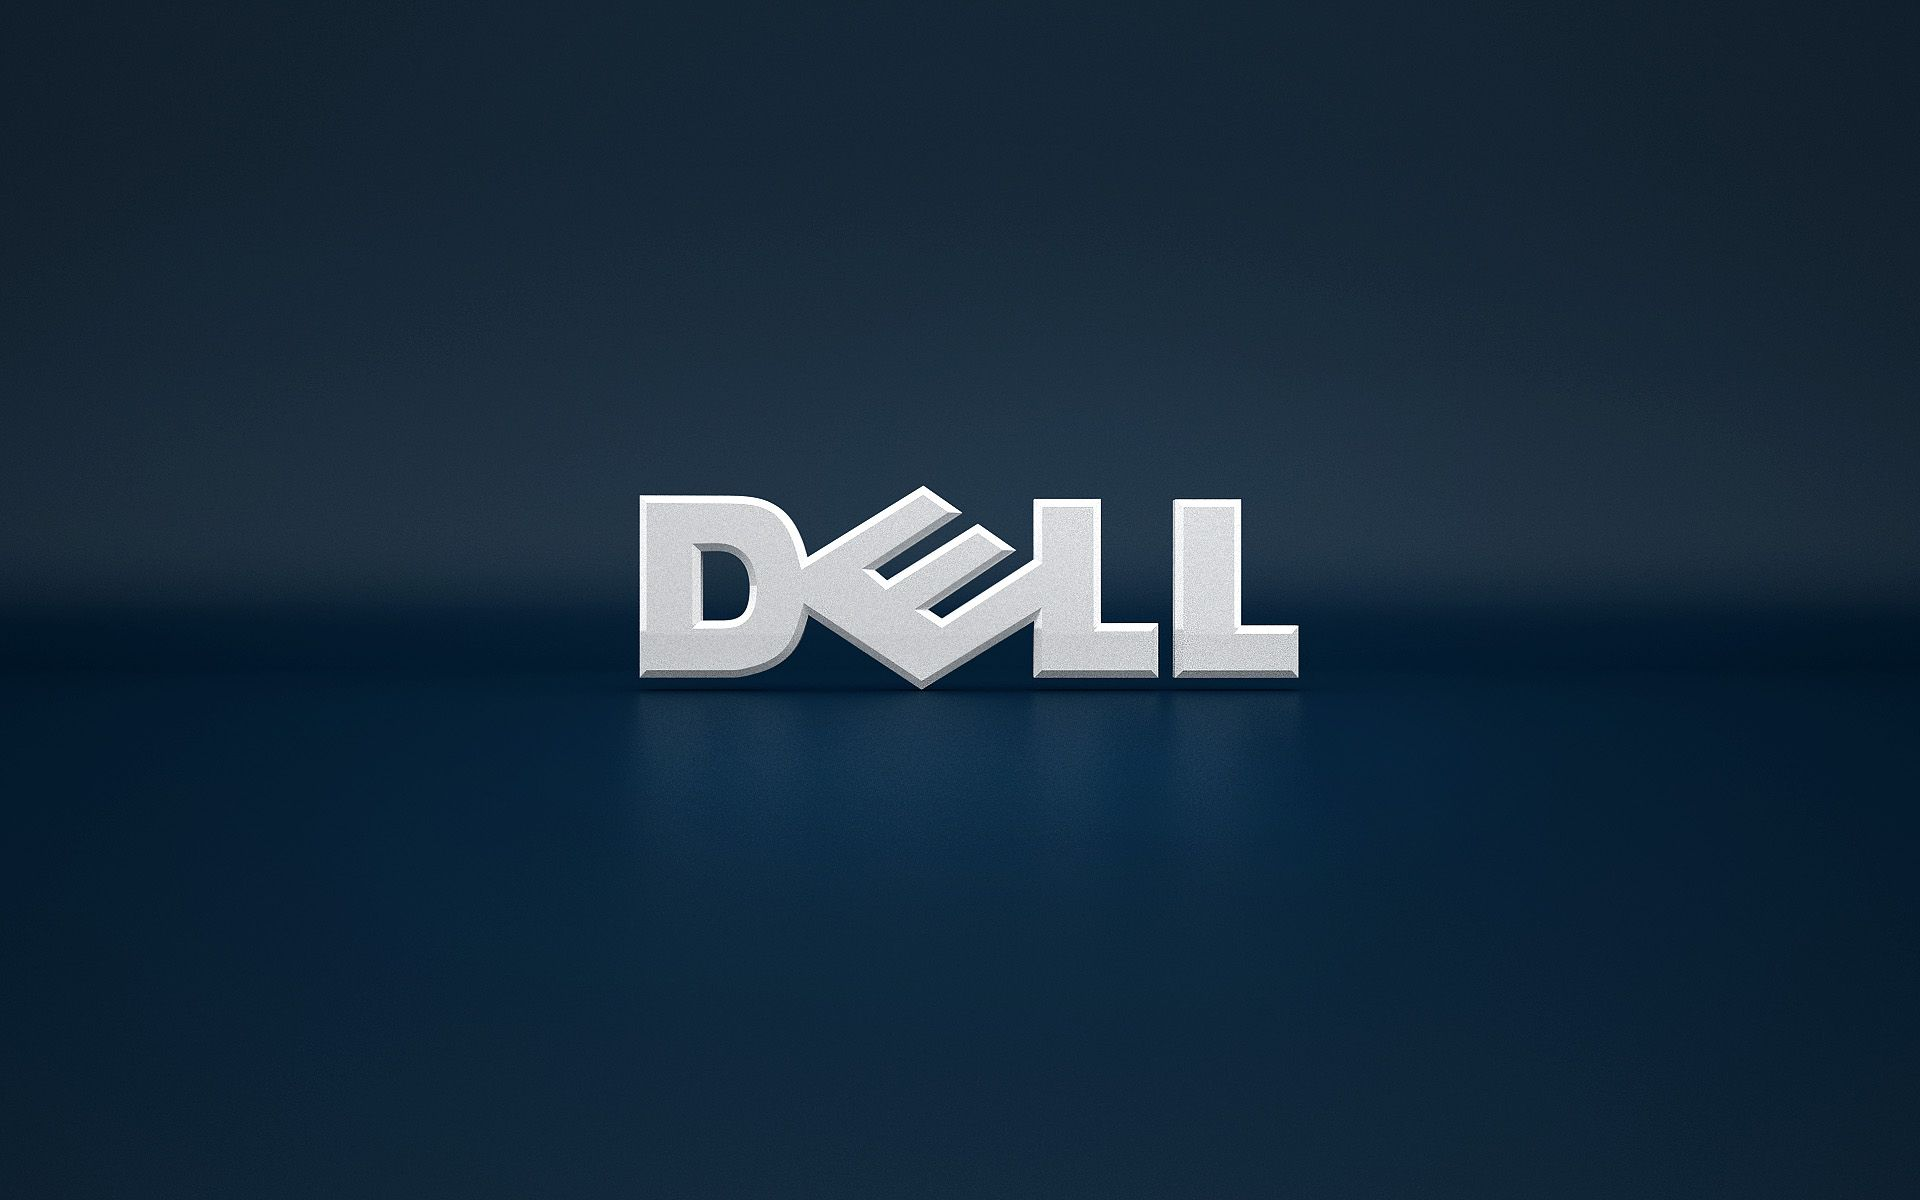 Wallpaper For Dell Computers 900 506 Desktop Backgrounds For Dell 62 Wallpapers Adorable Wallpapers Dell Logo Hd Wallpapers For Laptop Logo Wallpaper Hd